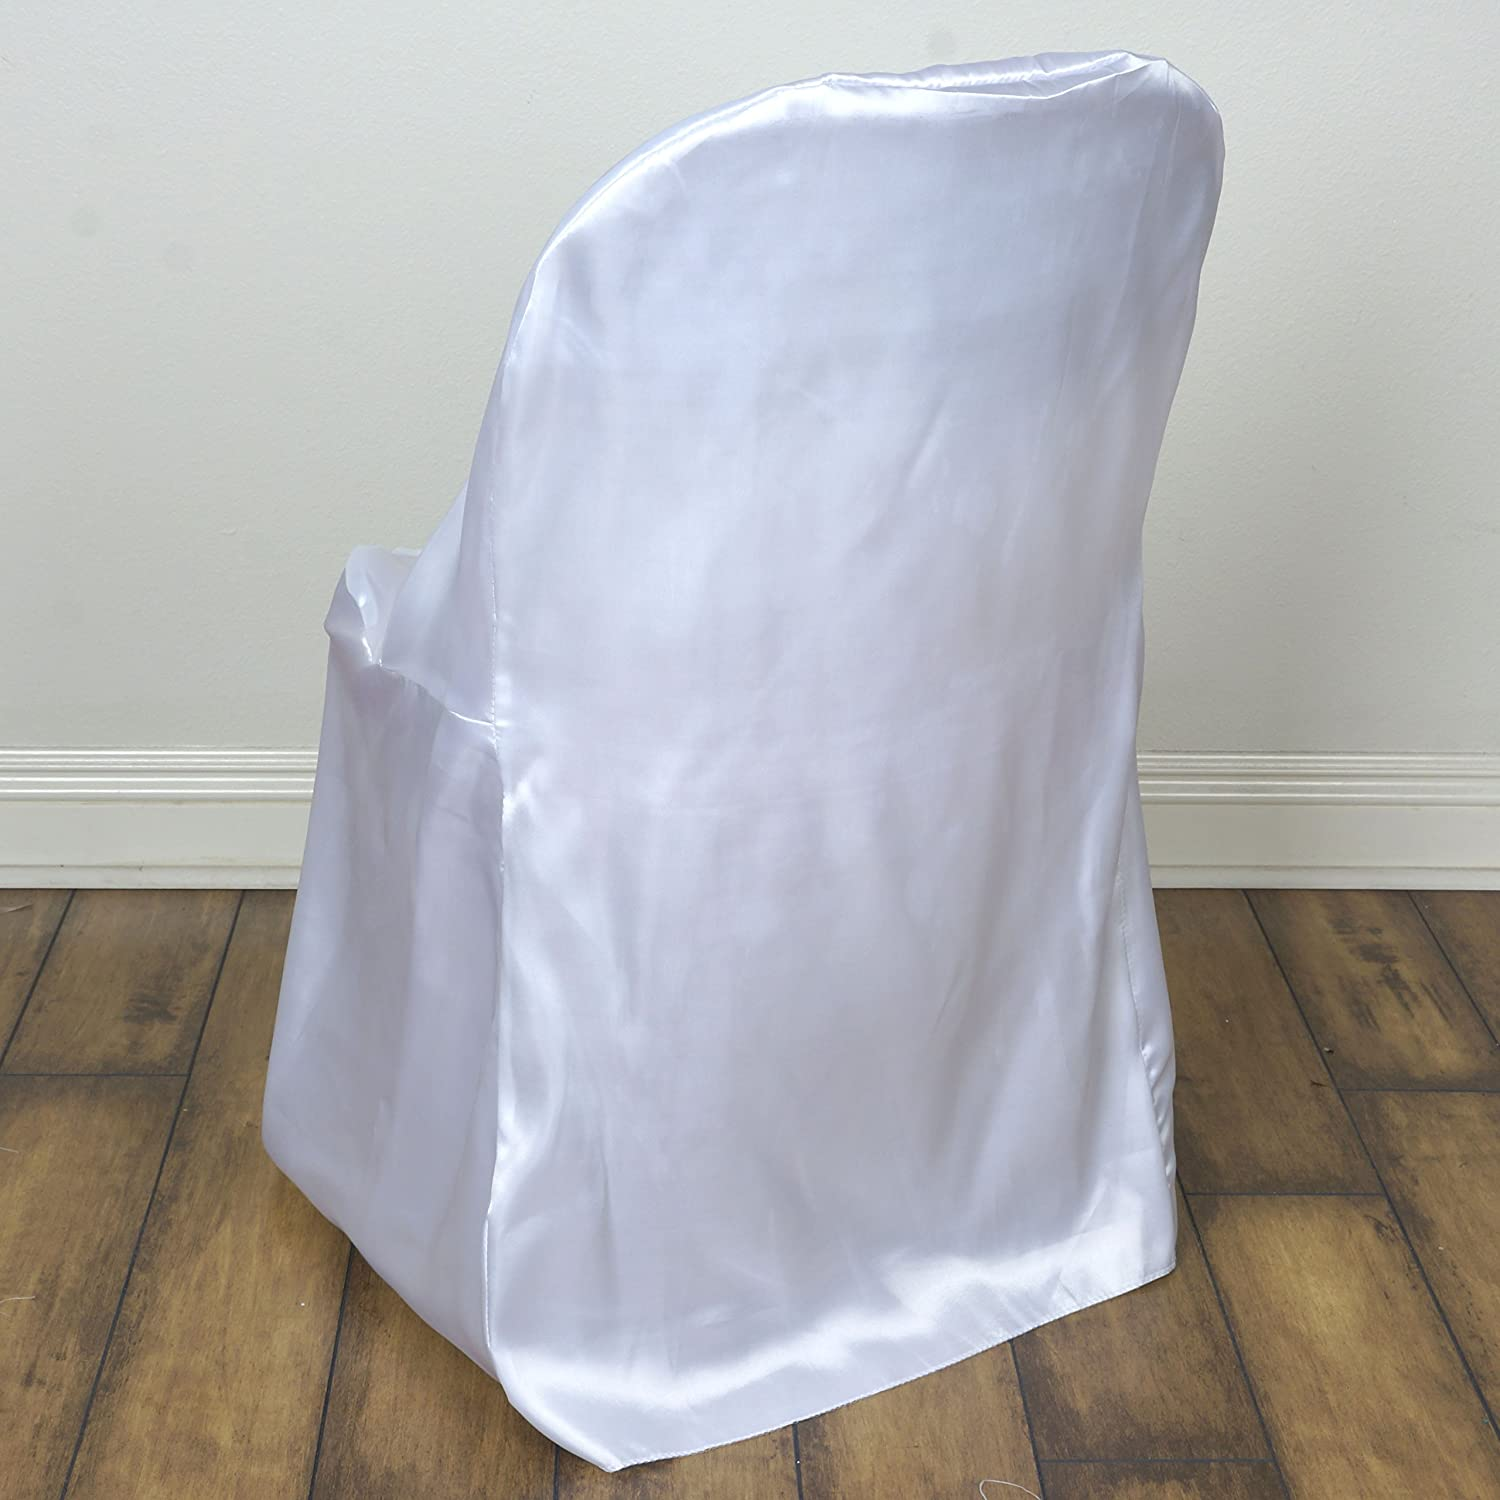 Amazon 50 pcs Satin Folding CHAIR COVERS Wedding Catering